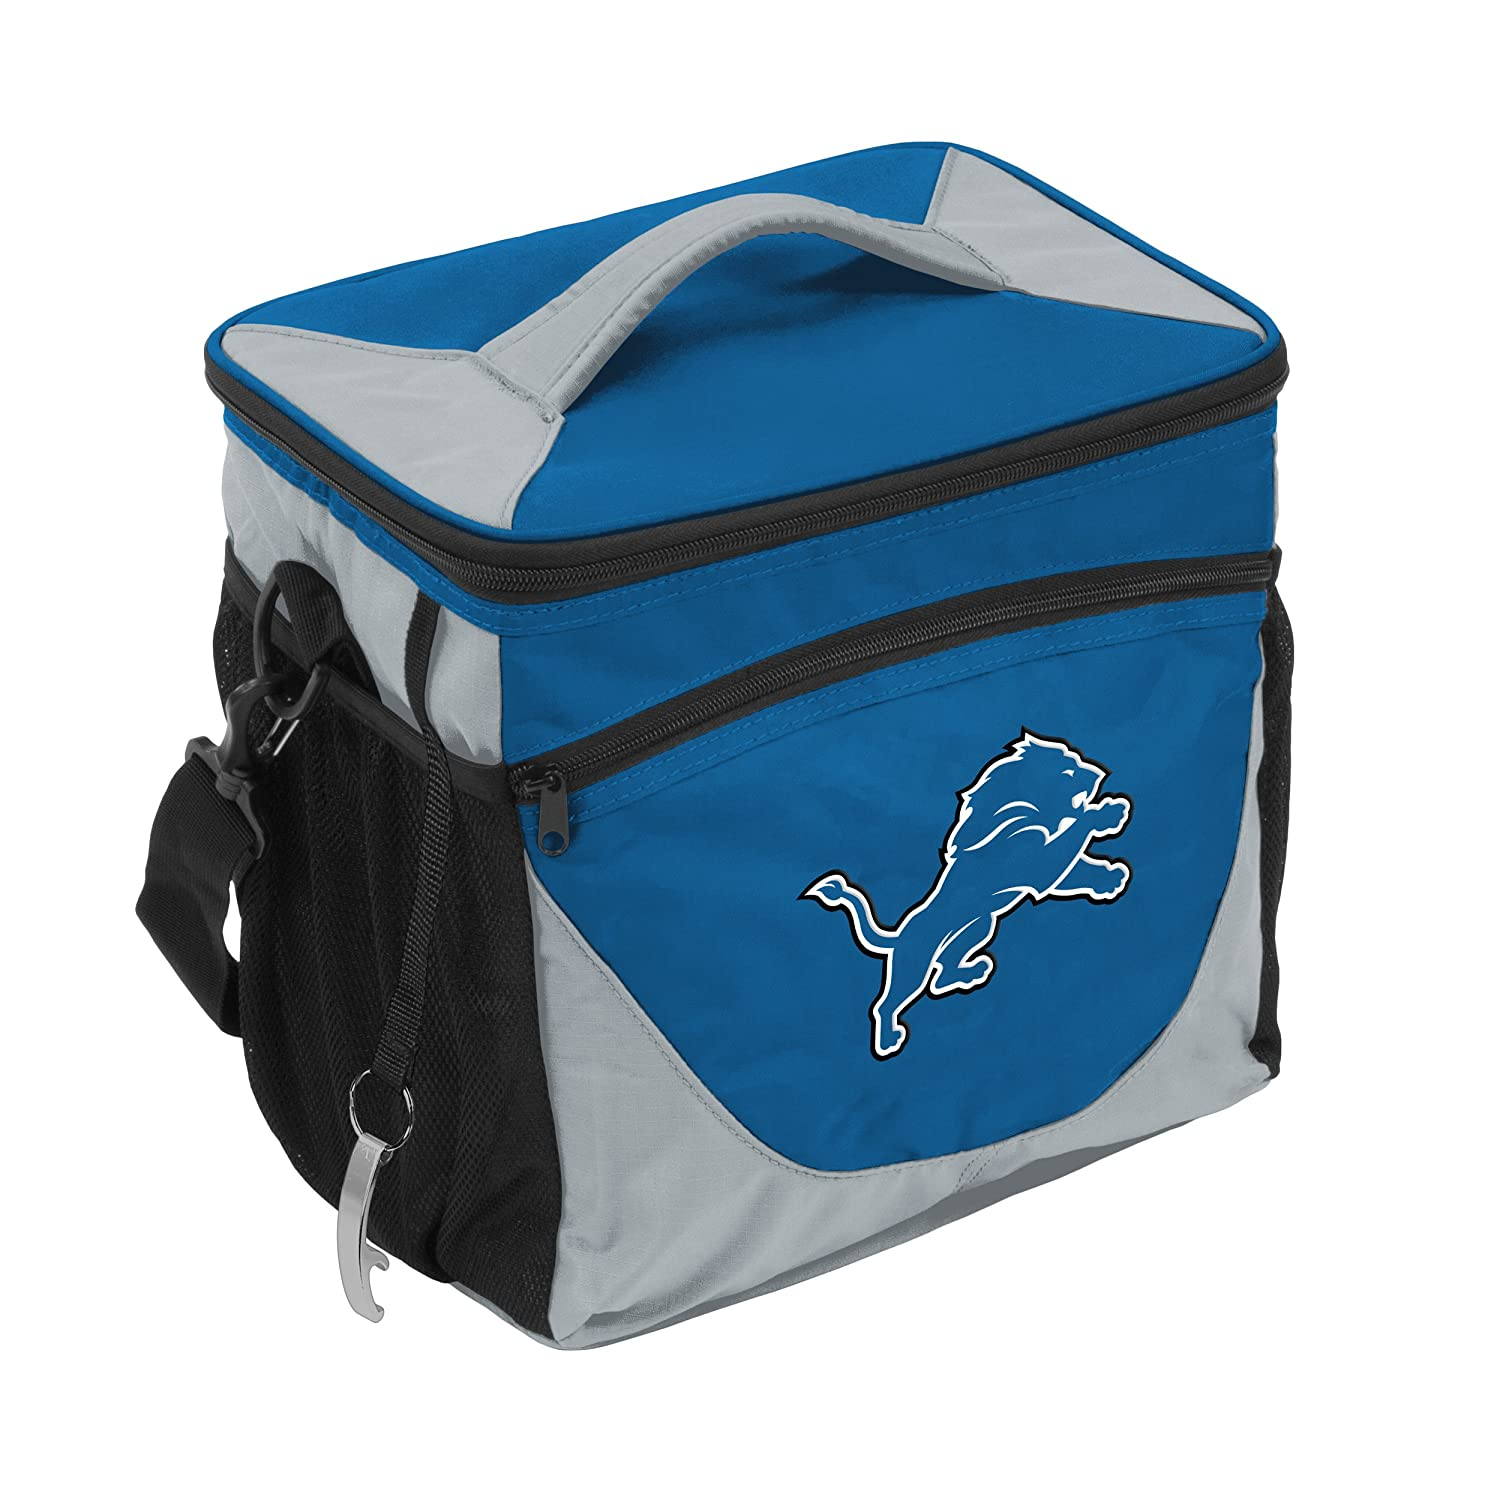 Logo Brands 611 63 Nfl Detroit Lions Carrot 24 Can Cooler One Size